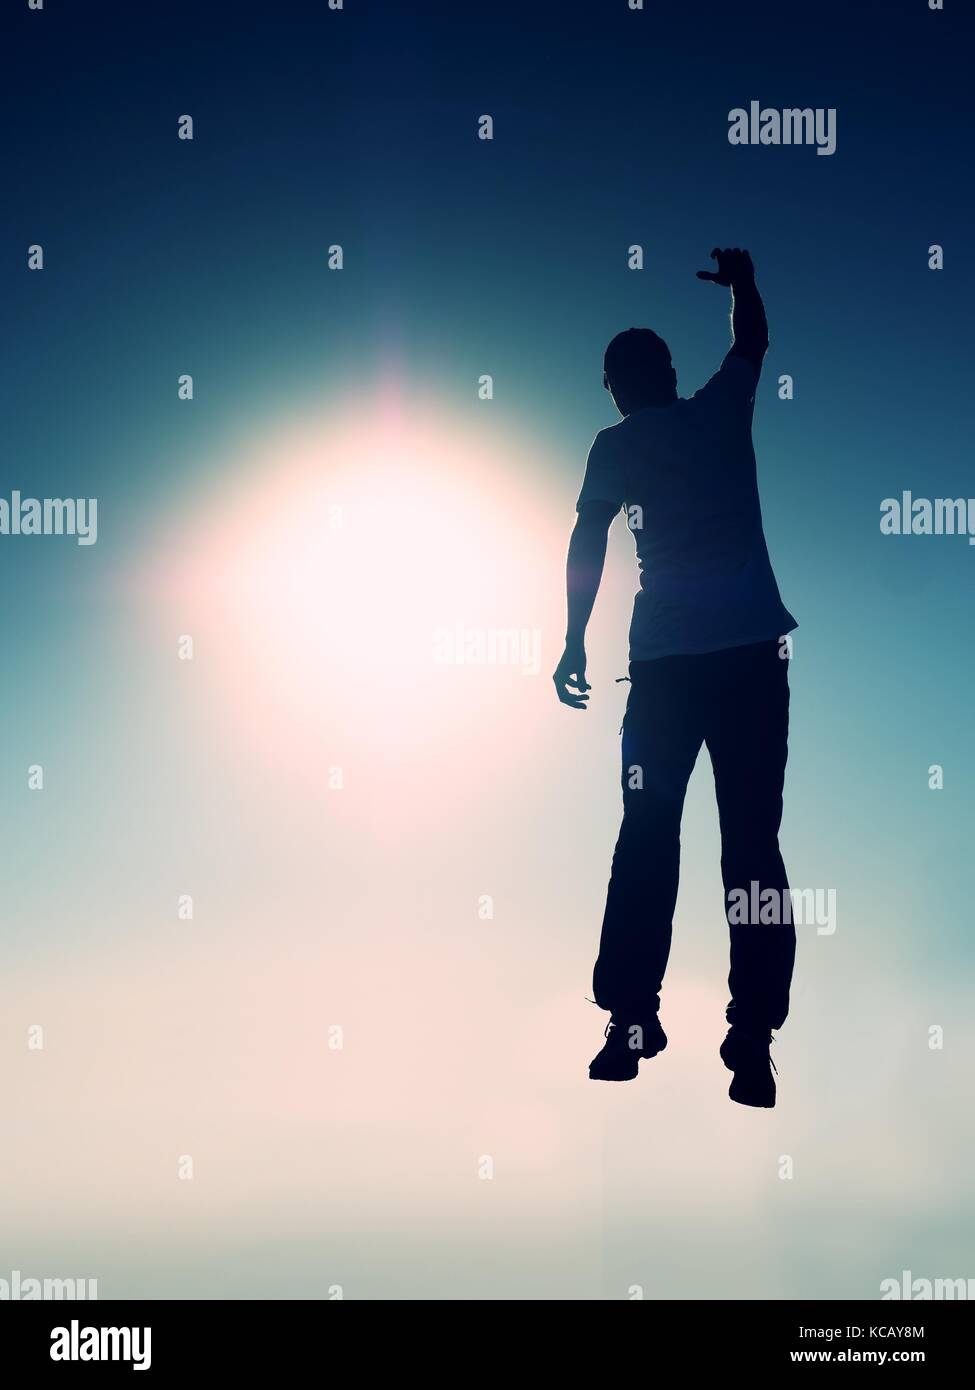 Crazy man is flying over Sun on blue sky background. Silhouette of jumping man and beautiful sunset sky. Element - Stock Image